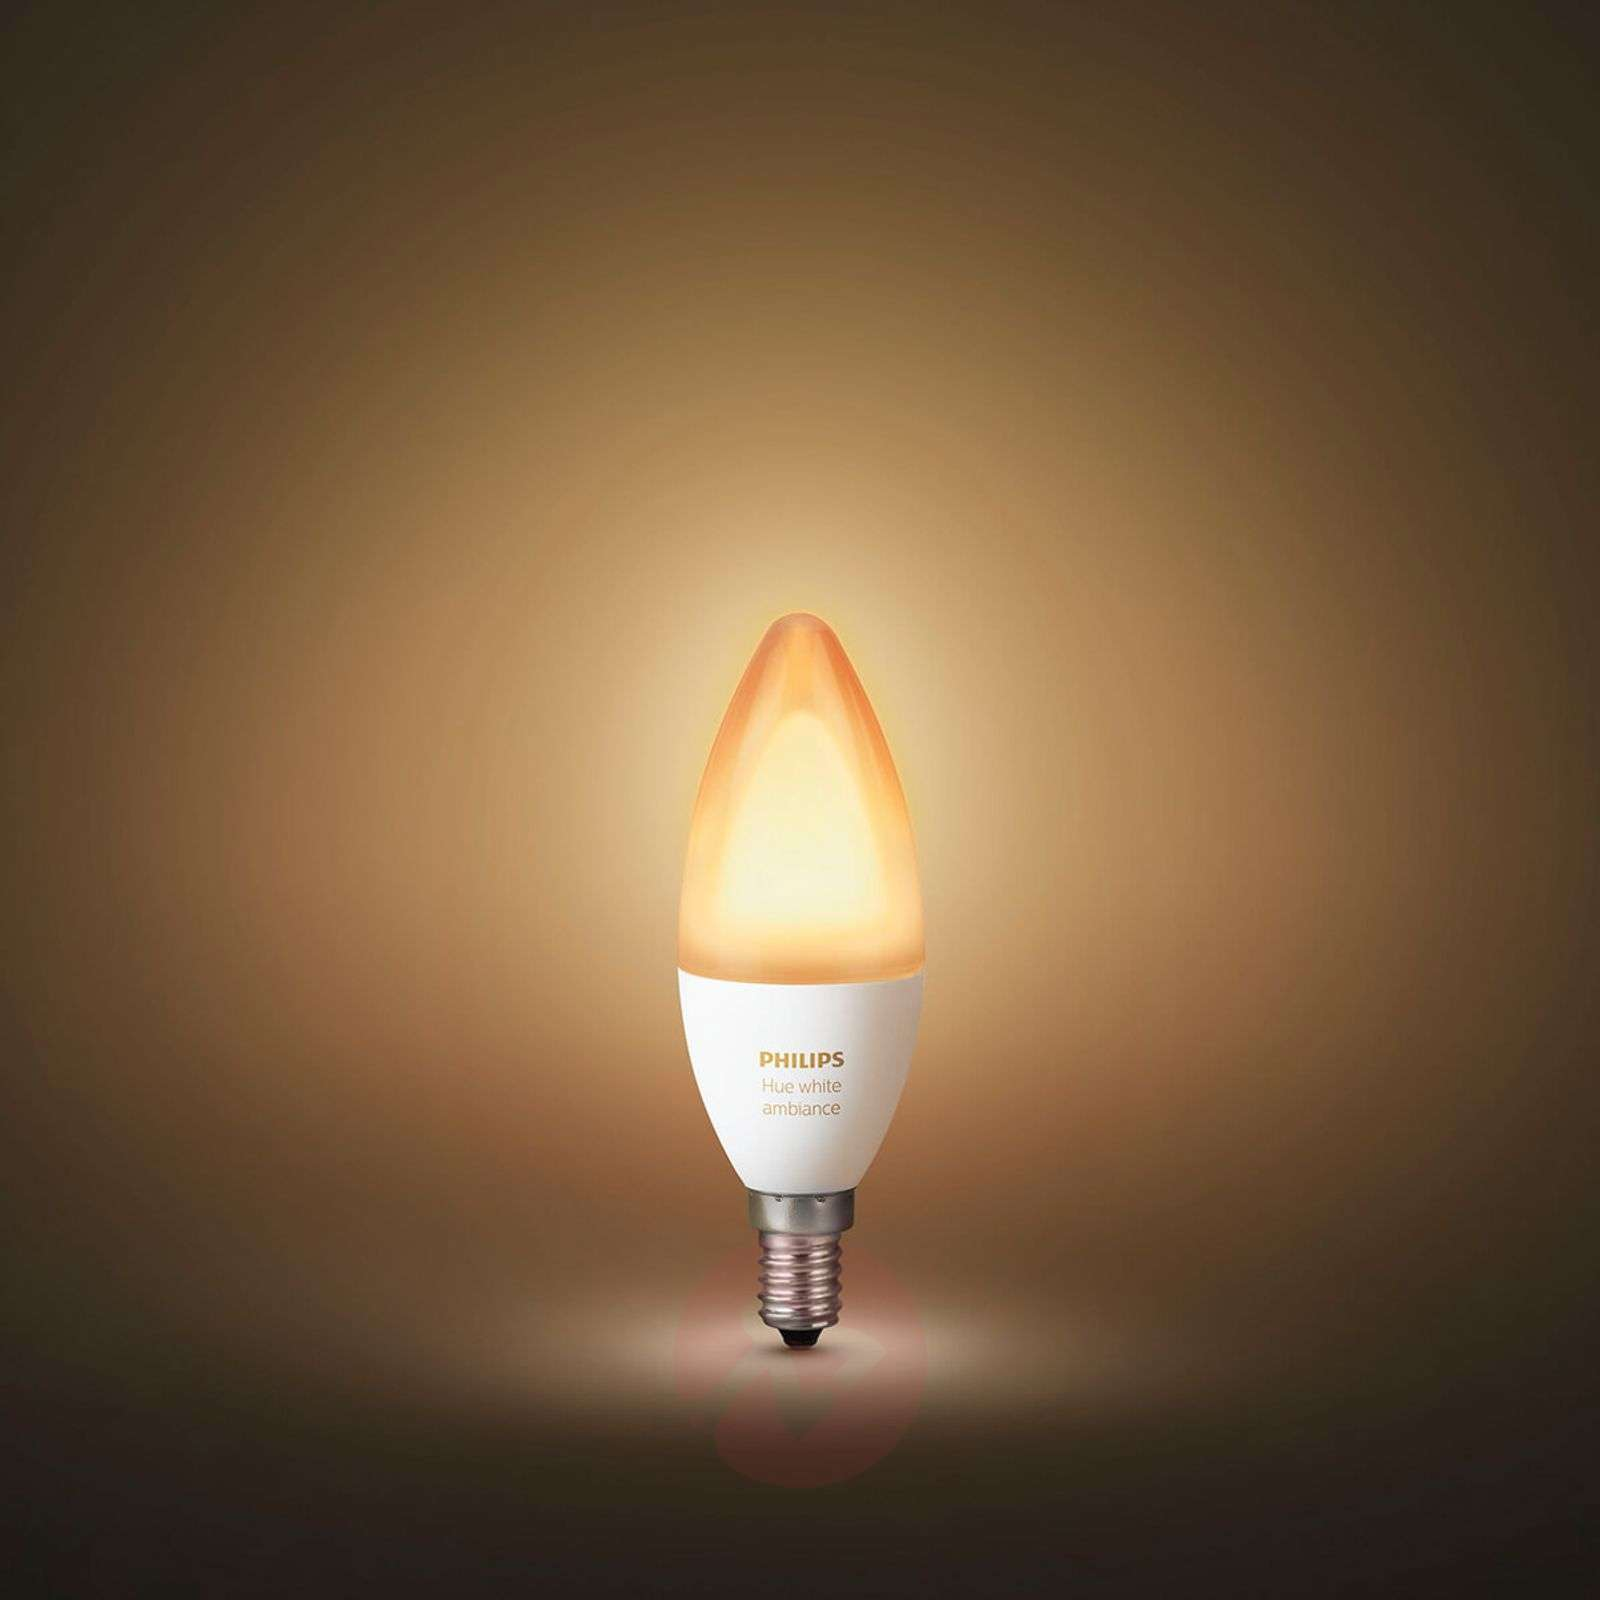 Ampoule flamme Philips HUE White Ambiance E14 6 W-7531918-01